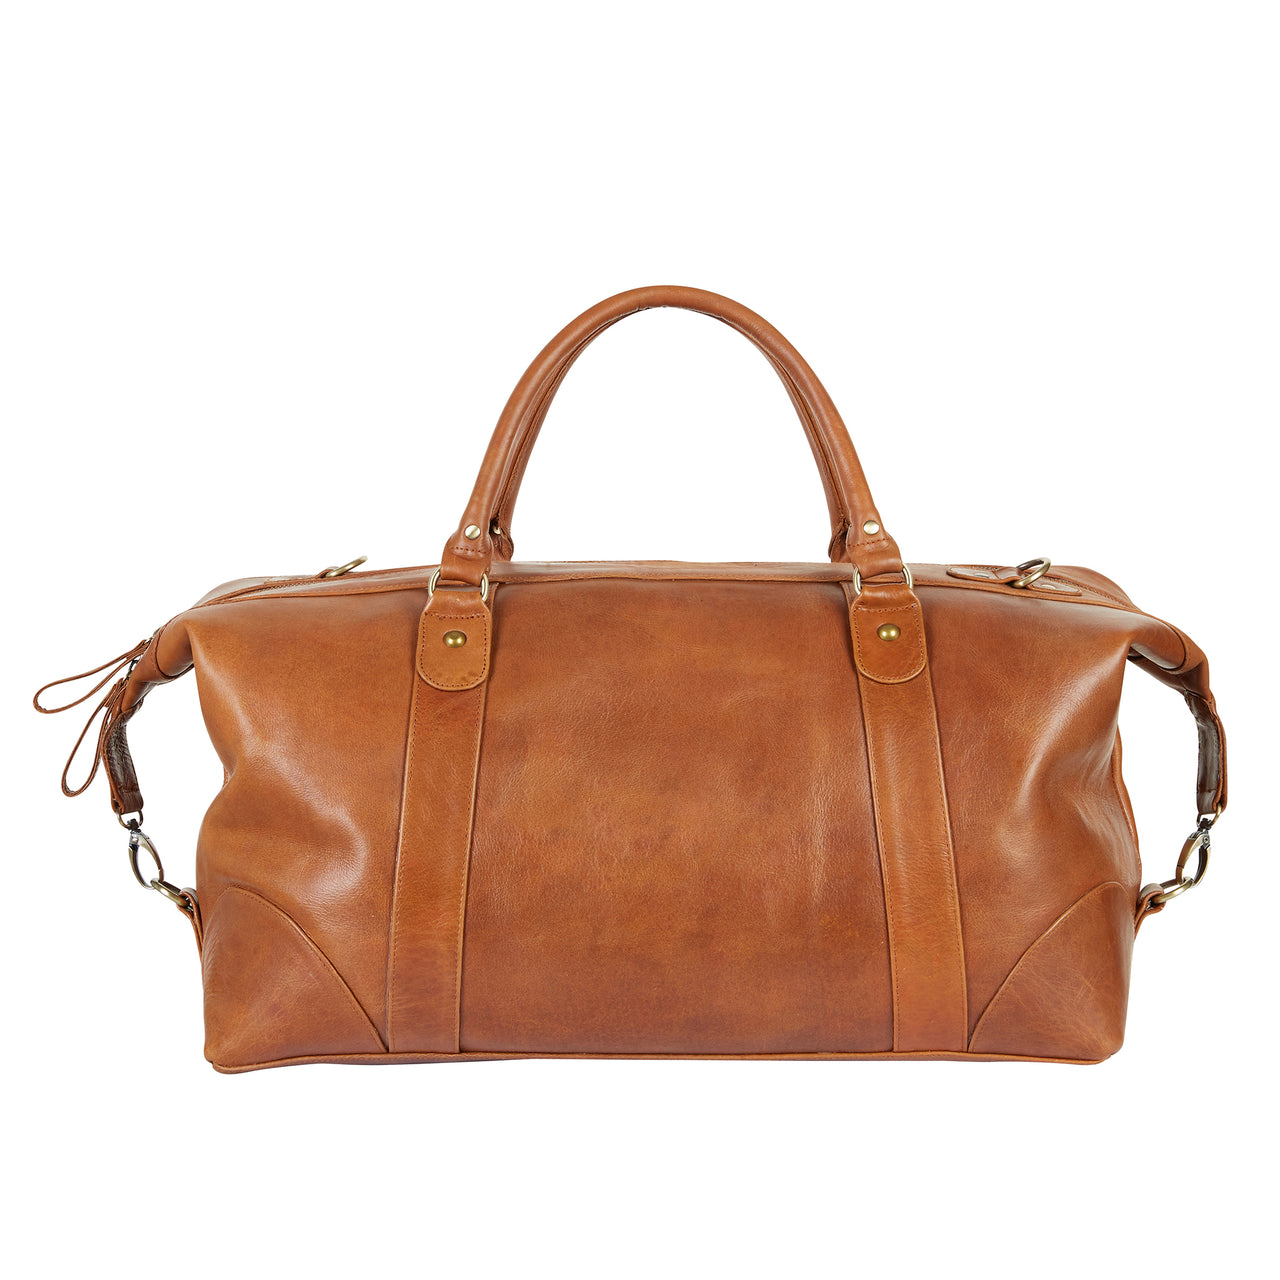 BOGATA LUGGAGE BAG - TAN